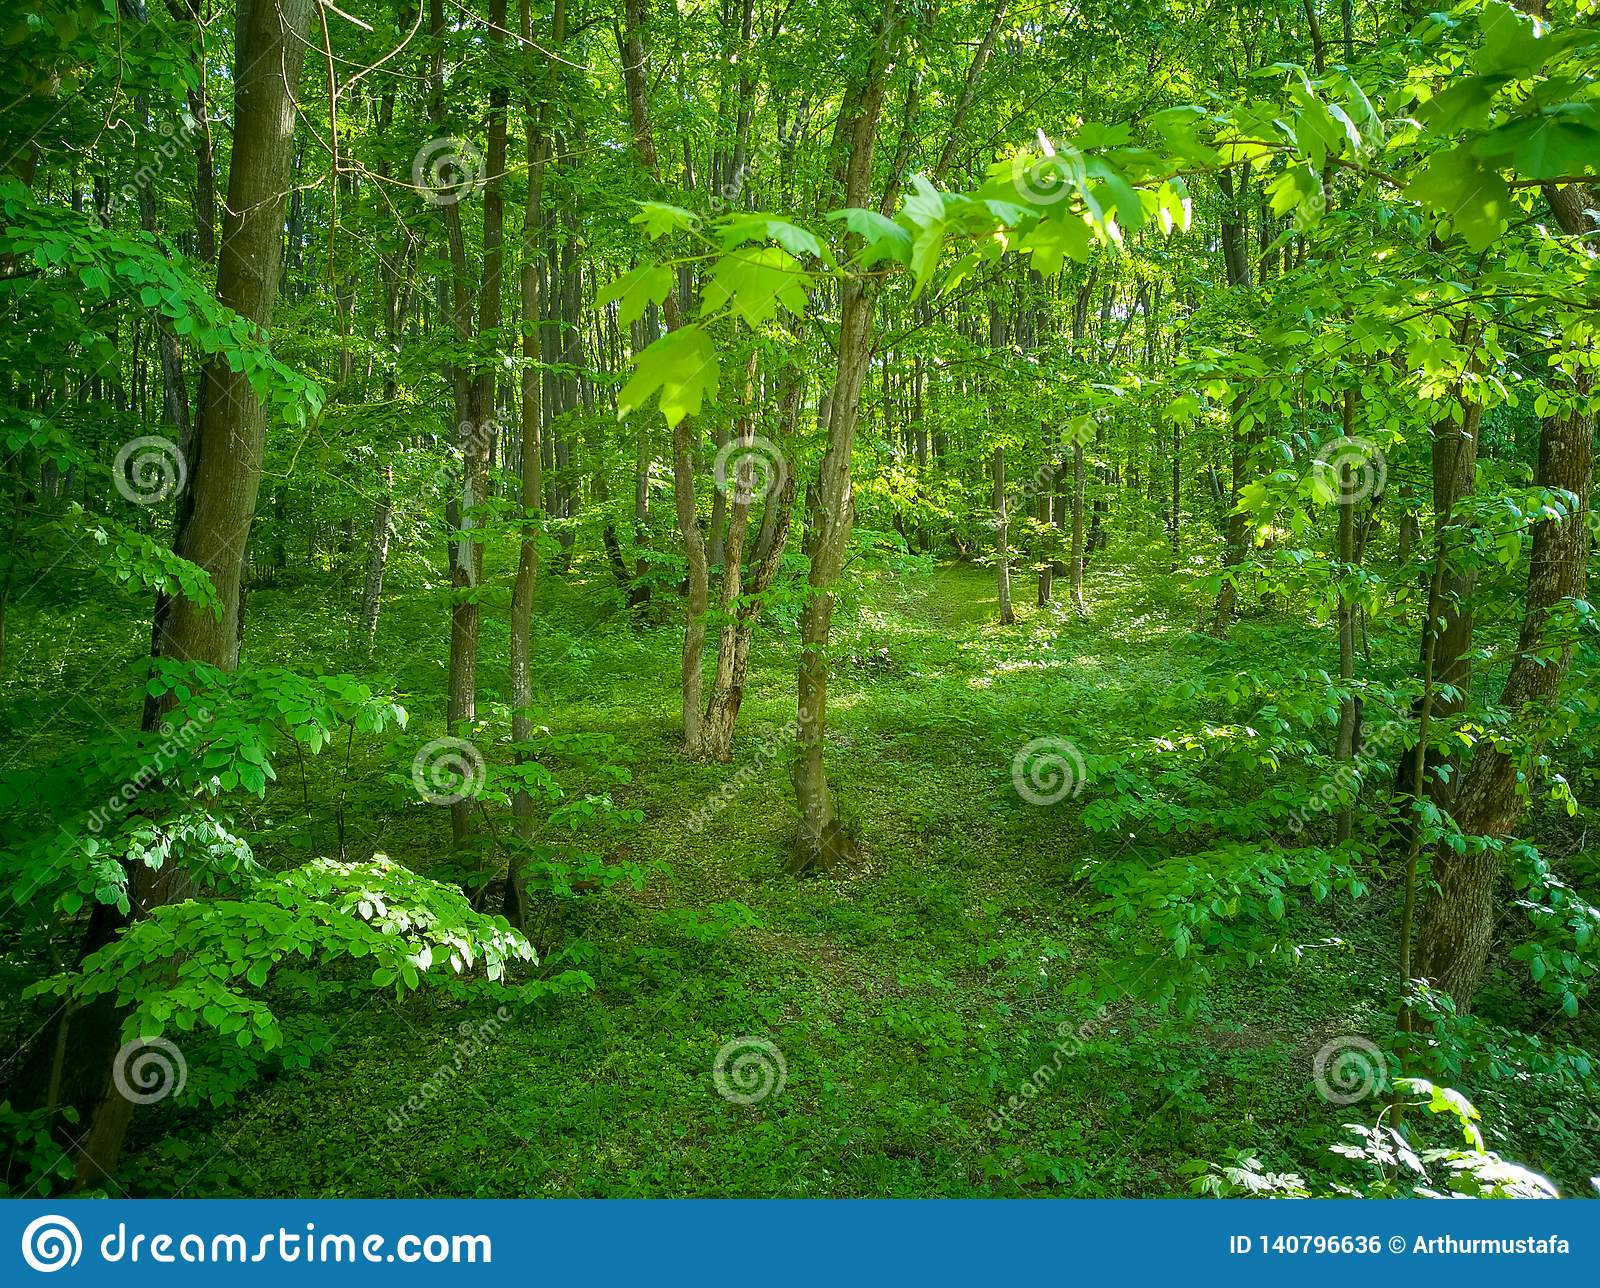 Vibrant green forest full of life under the spring warm sunlight. Spring nature perfect background, beautiful landscape of a lush